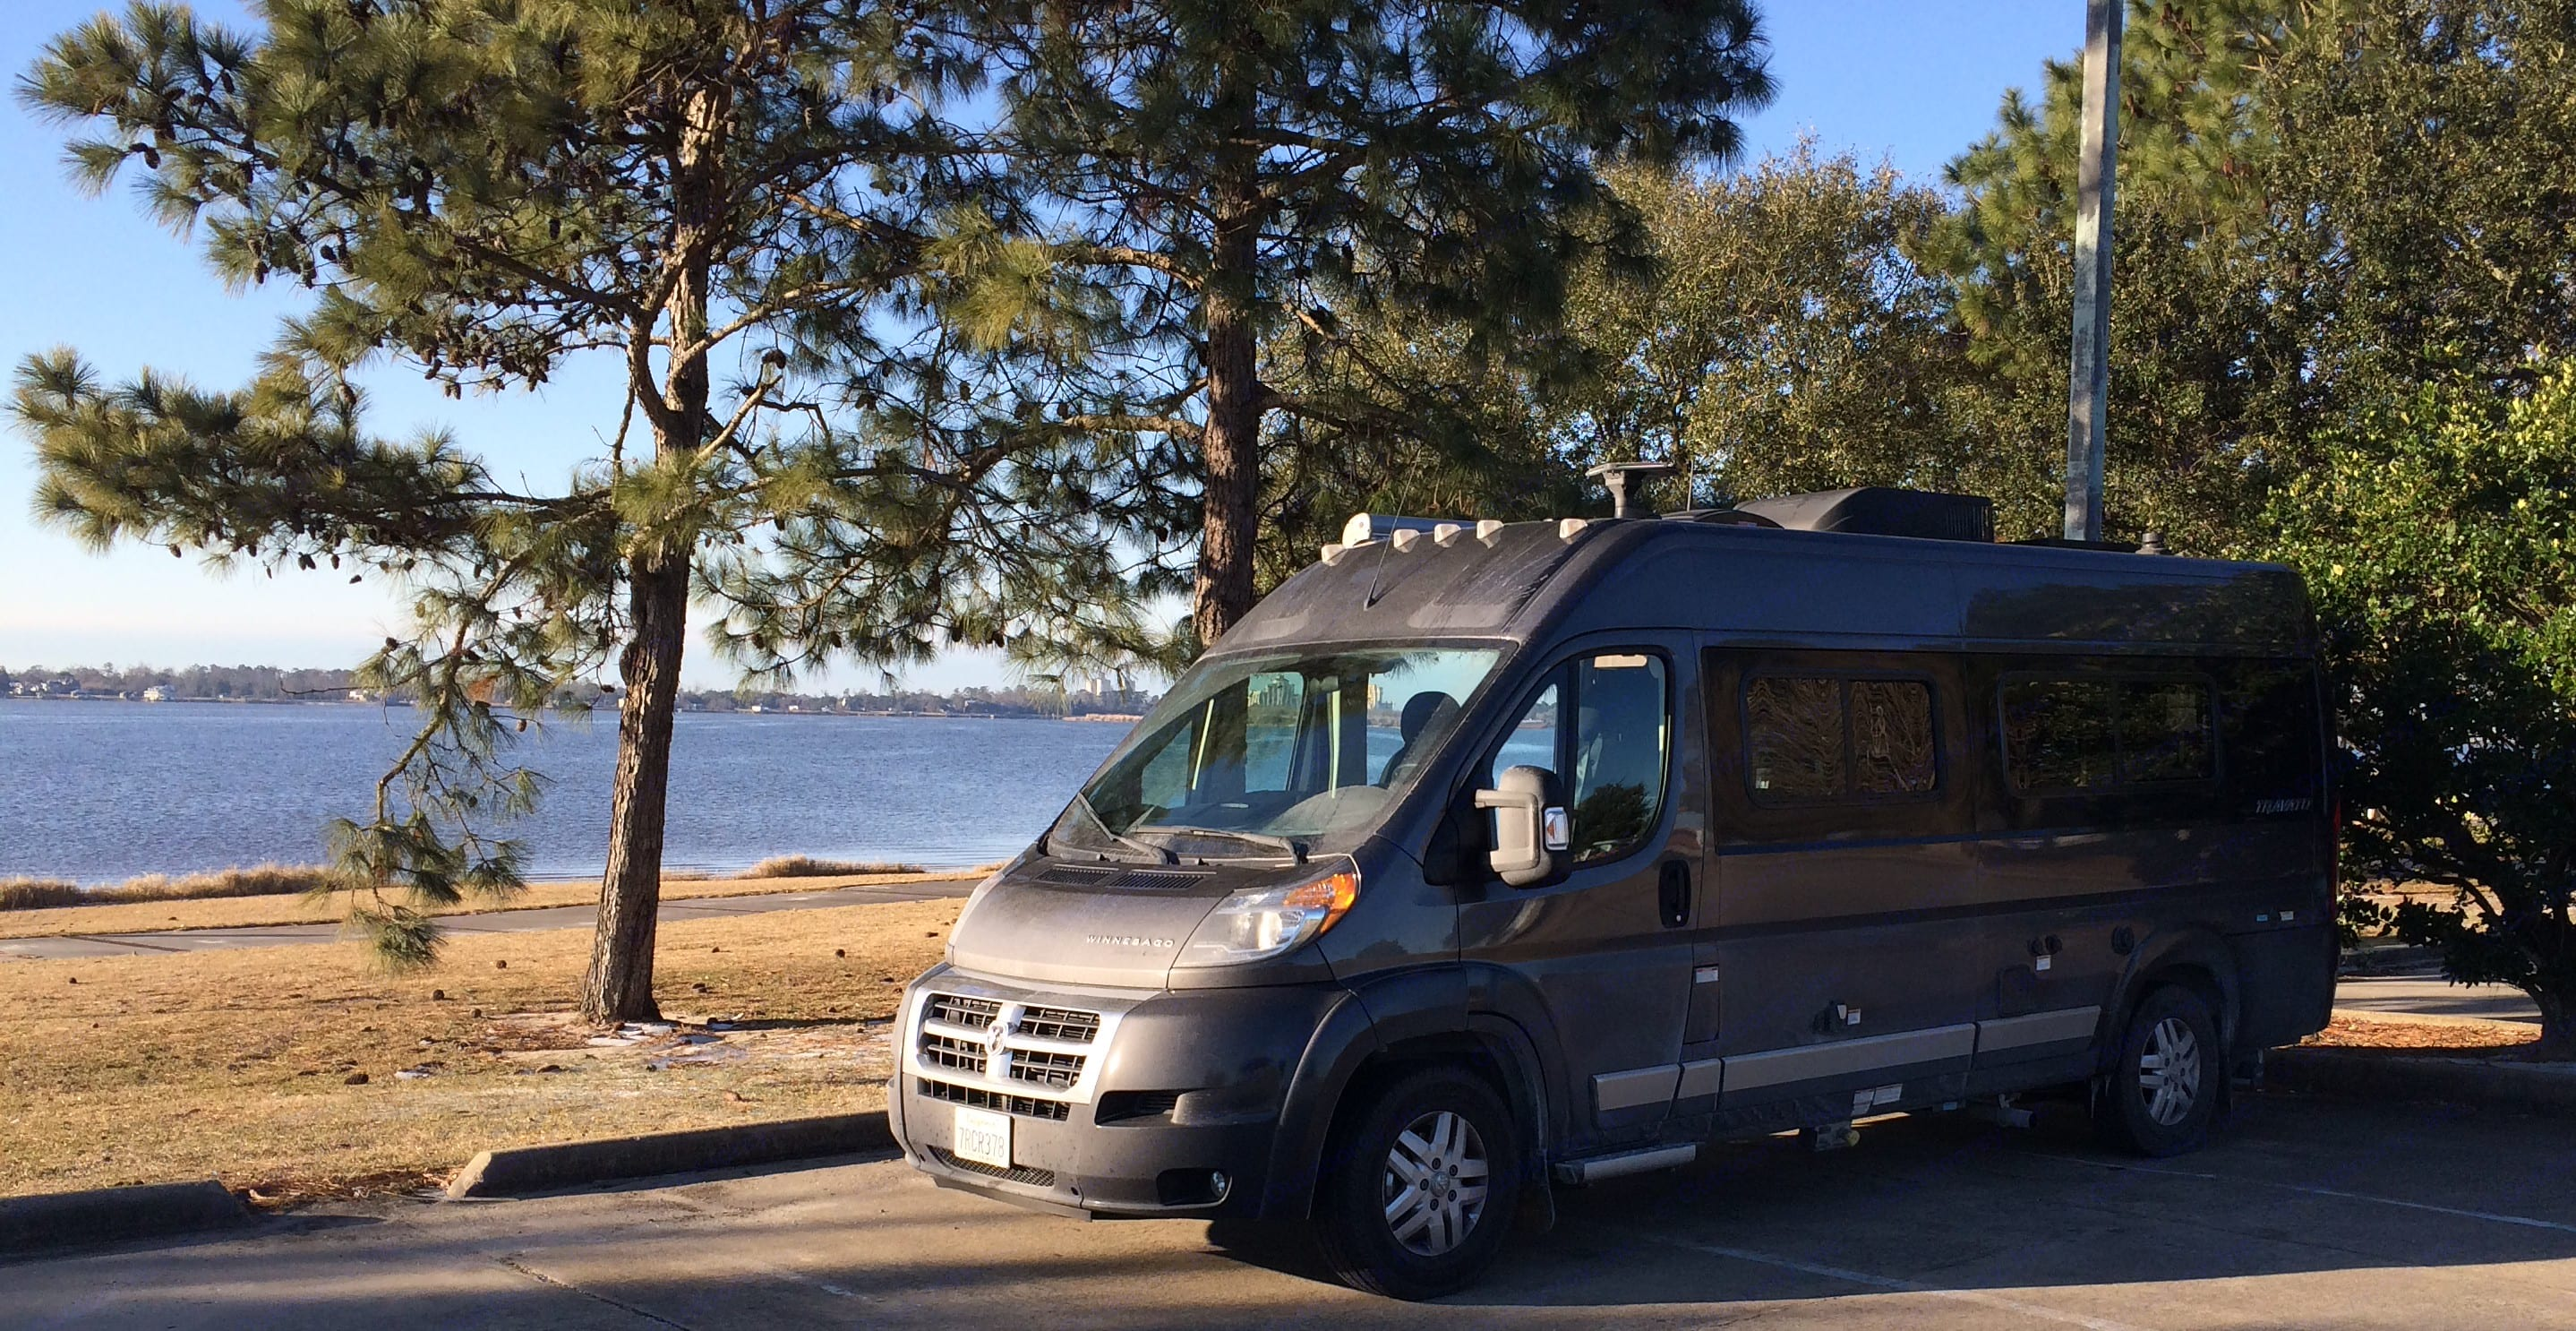 Comfortable and not distracting at a cool lakeside. Winnebago Travato 2017